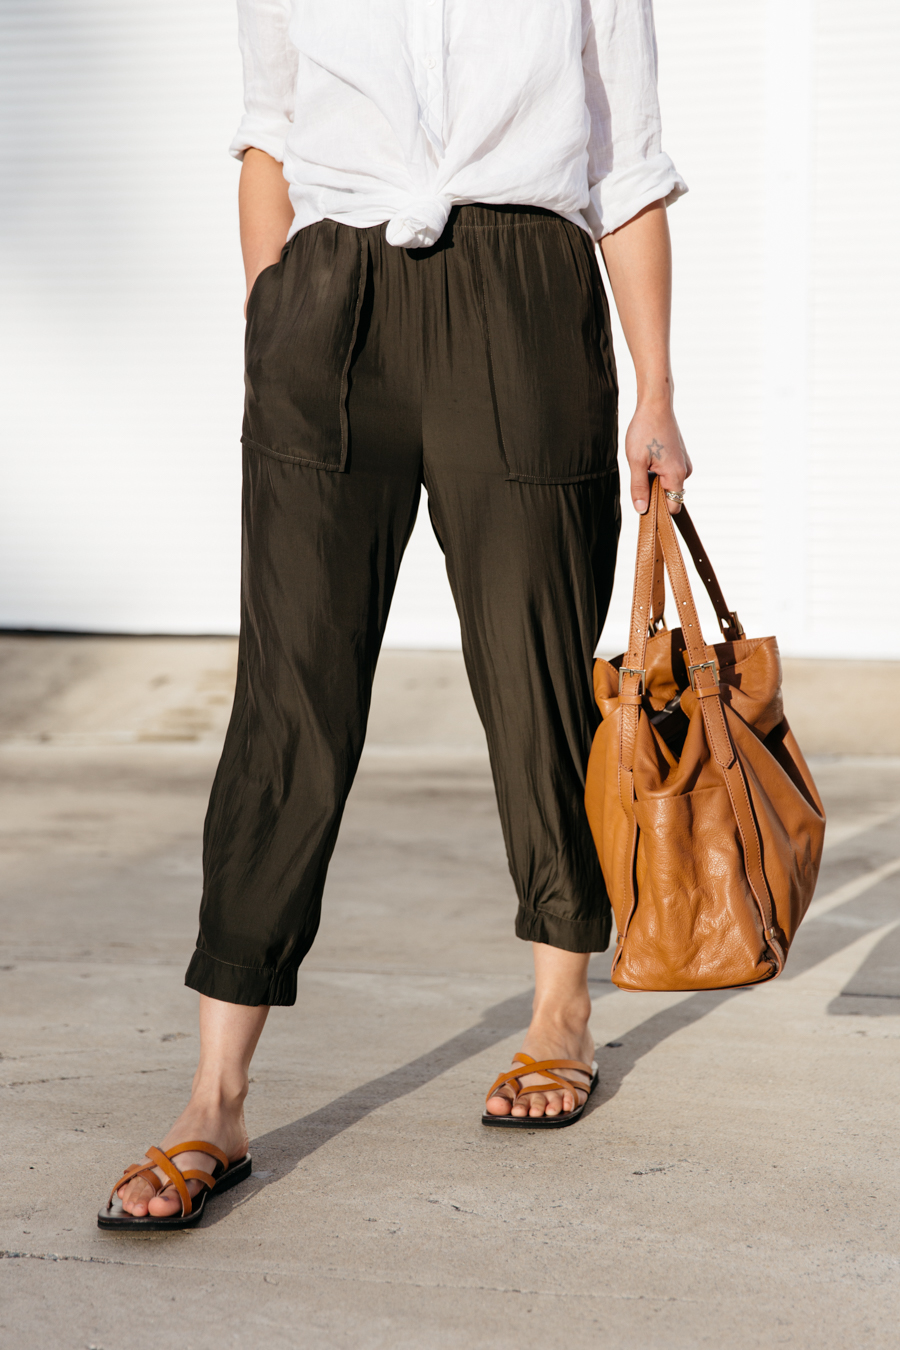 Japanese polyester pants with large pockets.